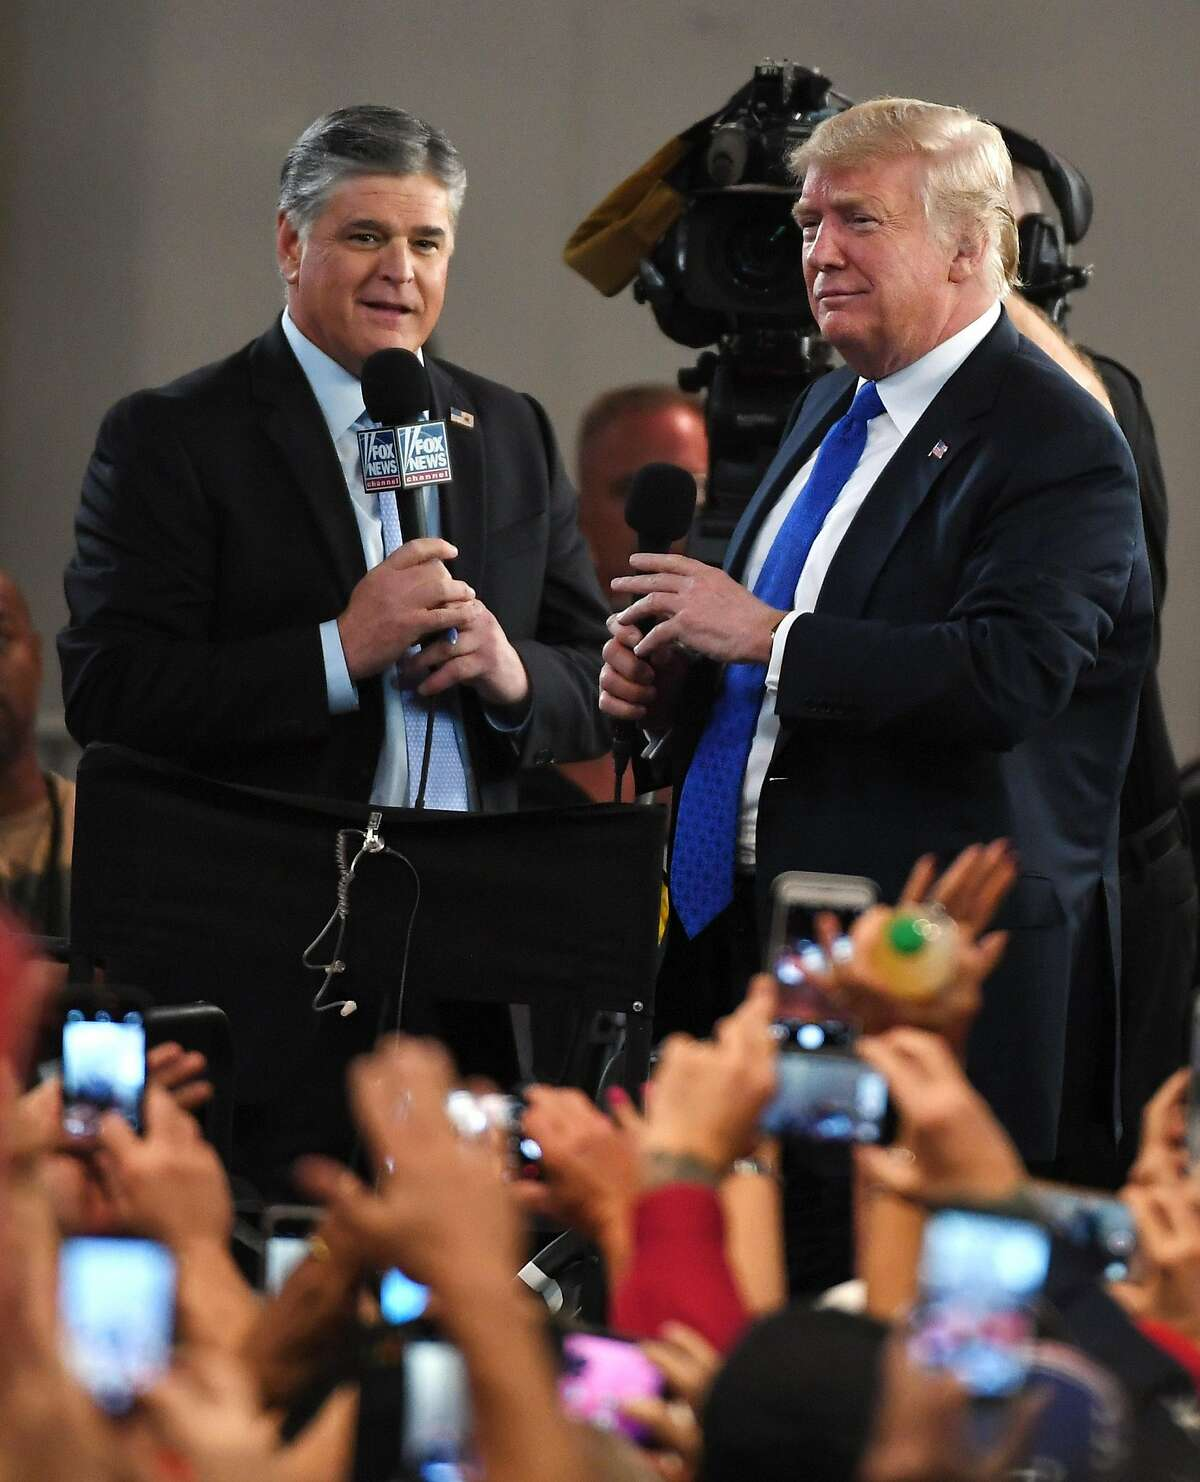 LAS VEGAS, NV - SEPTEMBER 20: Fox News Channel and radio talk show host Sean Hannity (L) interviews U.S. President Donald Trump before a campaign rally at the Las Vegas Convention Center on September 20, 2018 in Las Vegas, Nevada. (Photo by Ethan Miller/Getty Images)